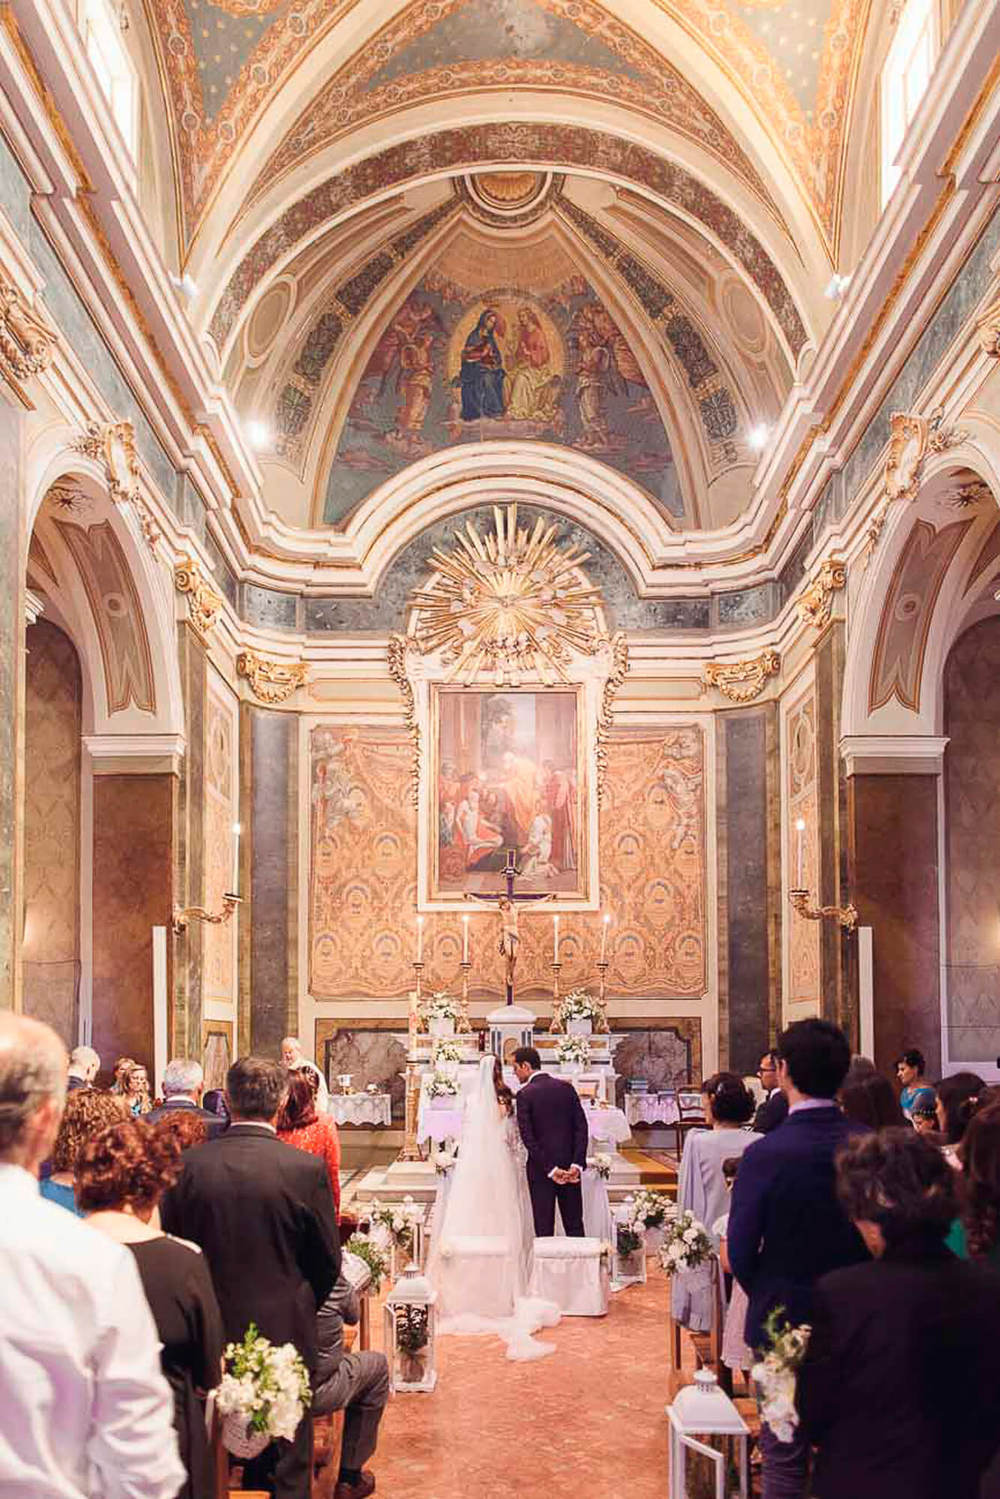 70_wedding_Chiesa San Girolamo.jpg